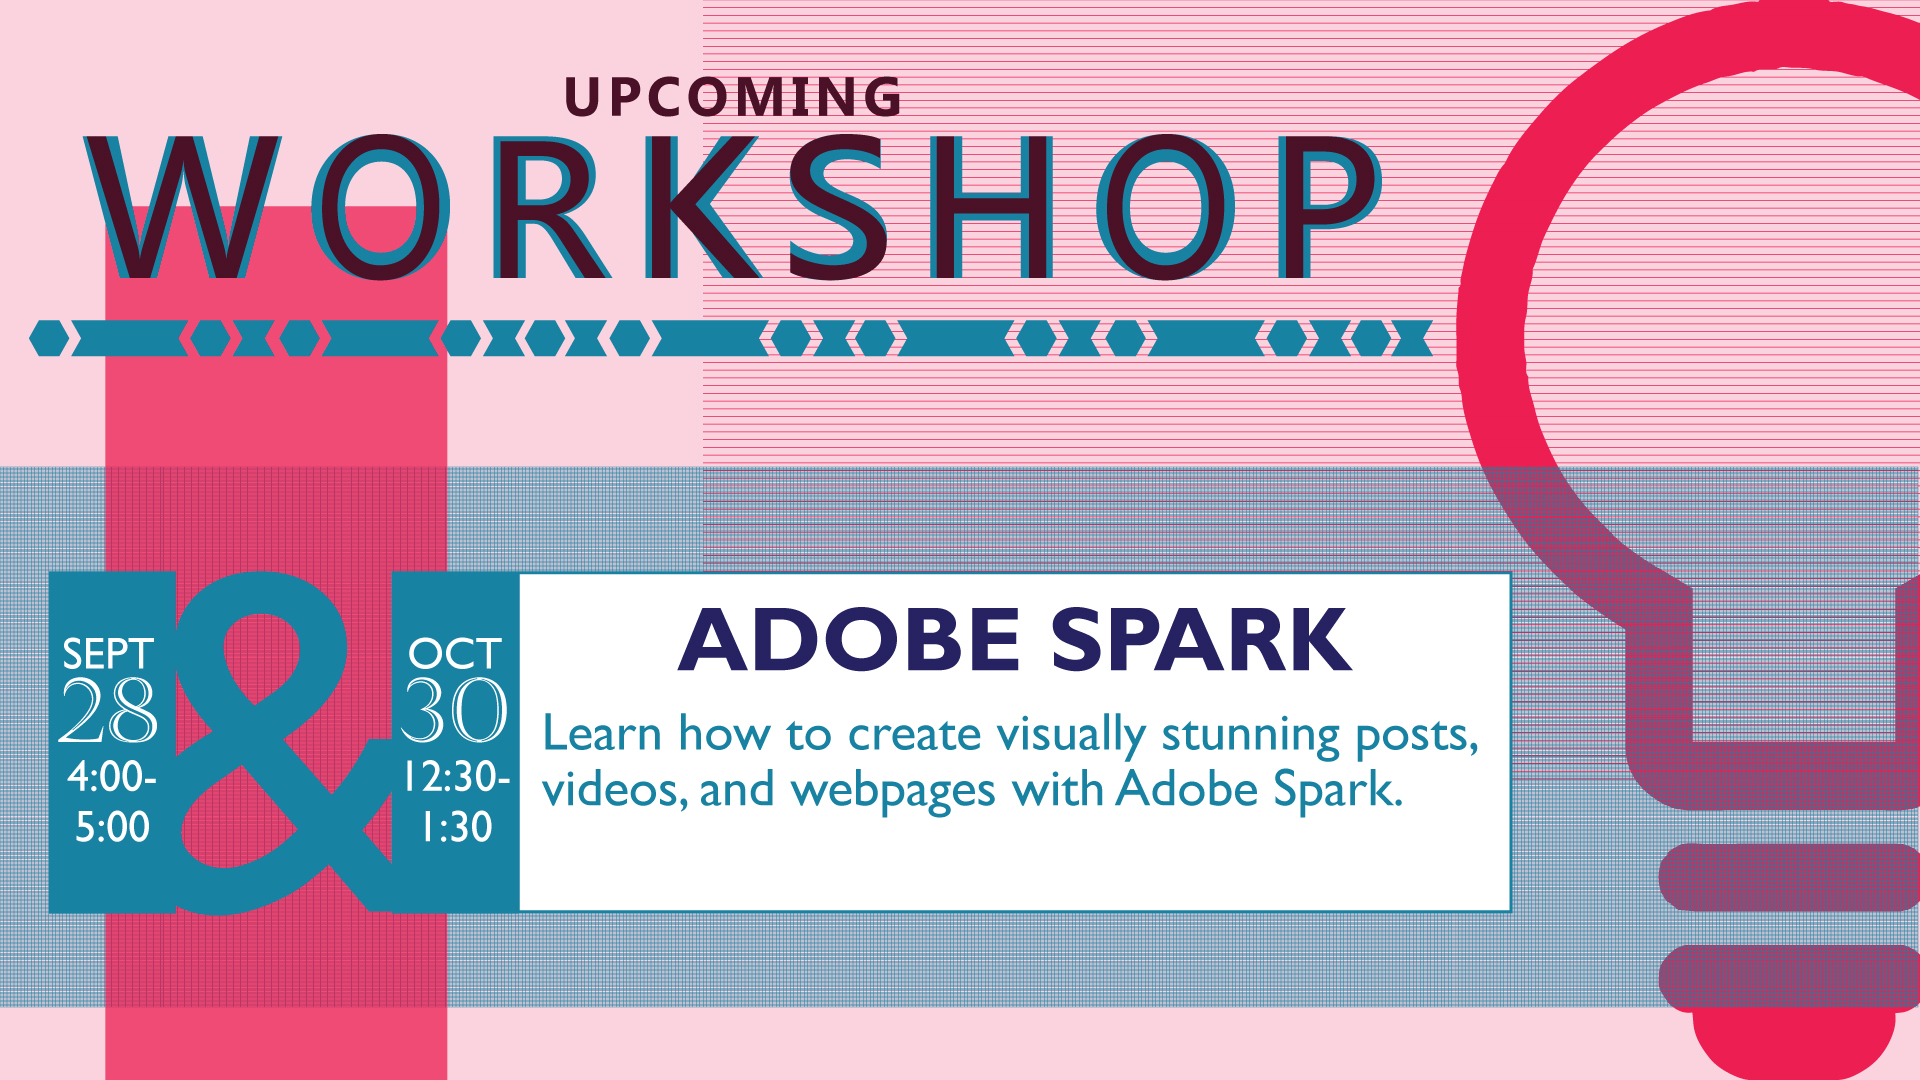 Adobe Spark Worksop